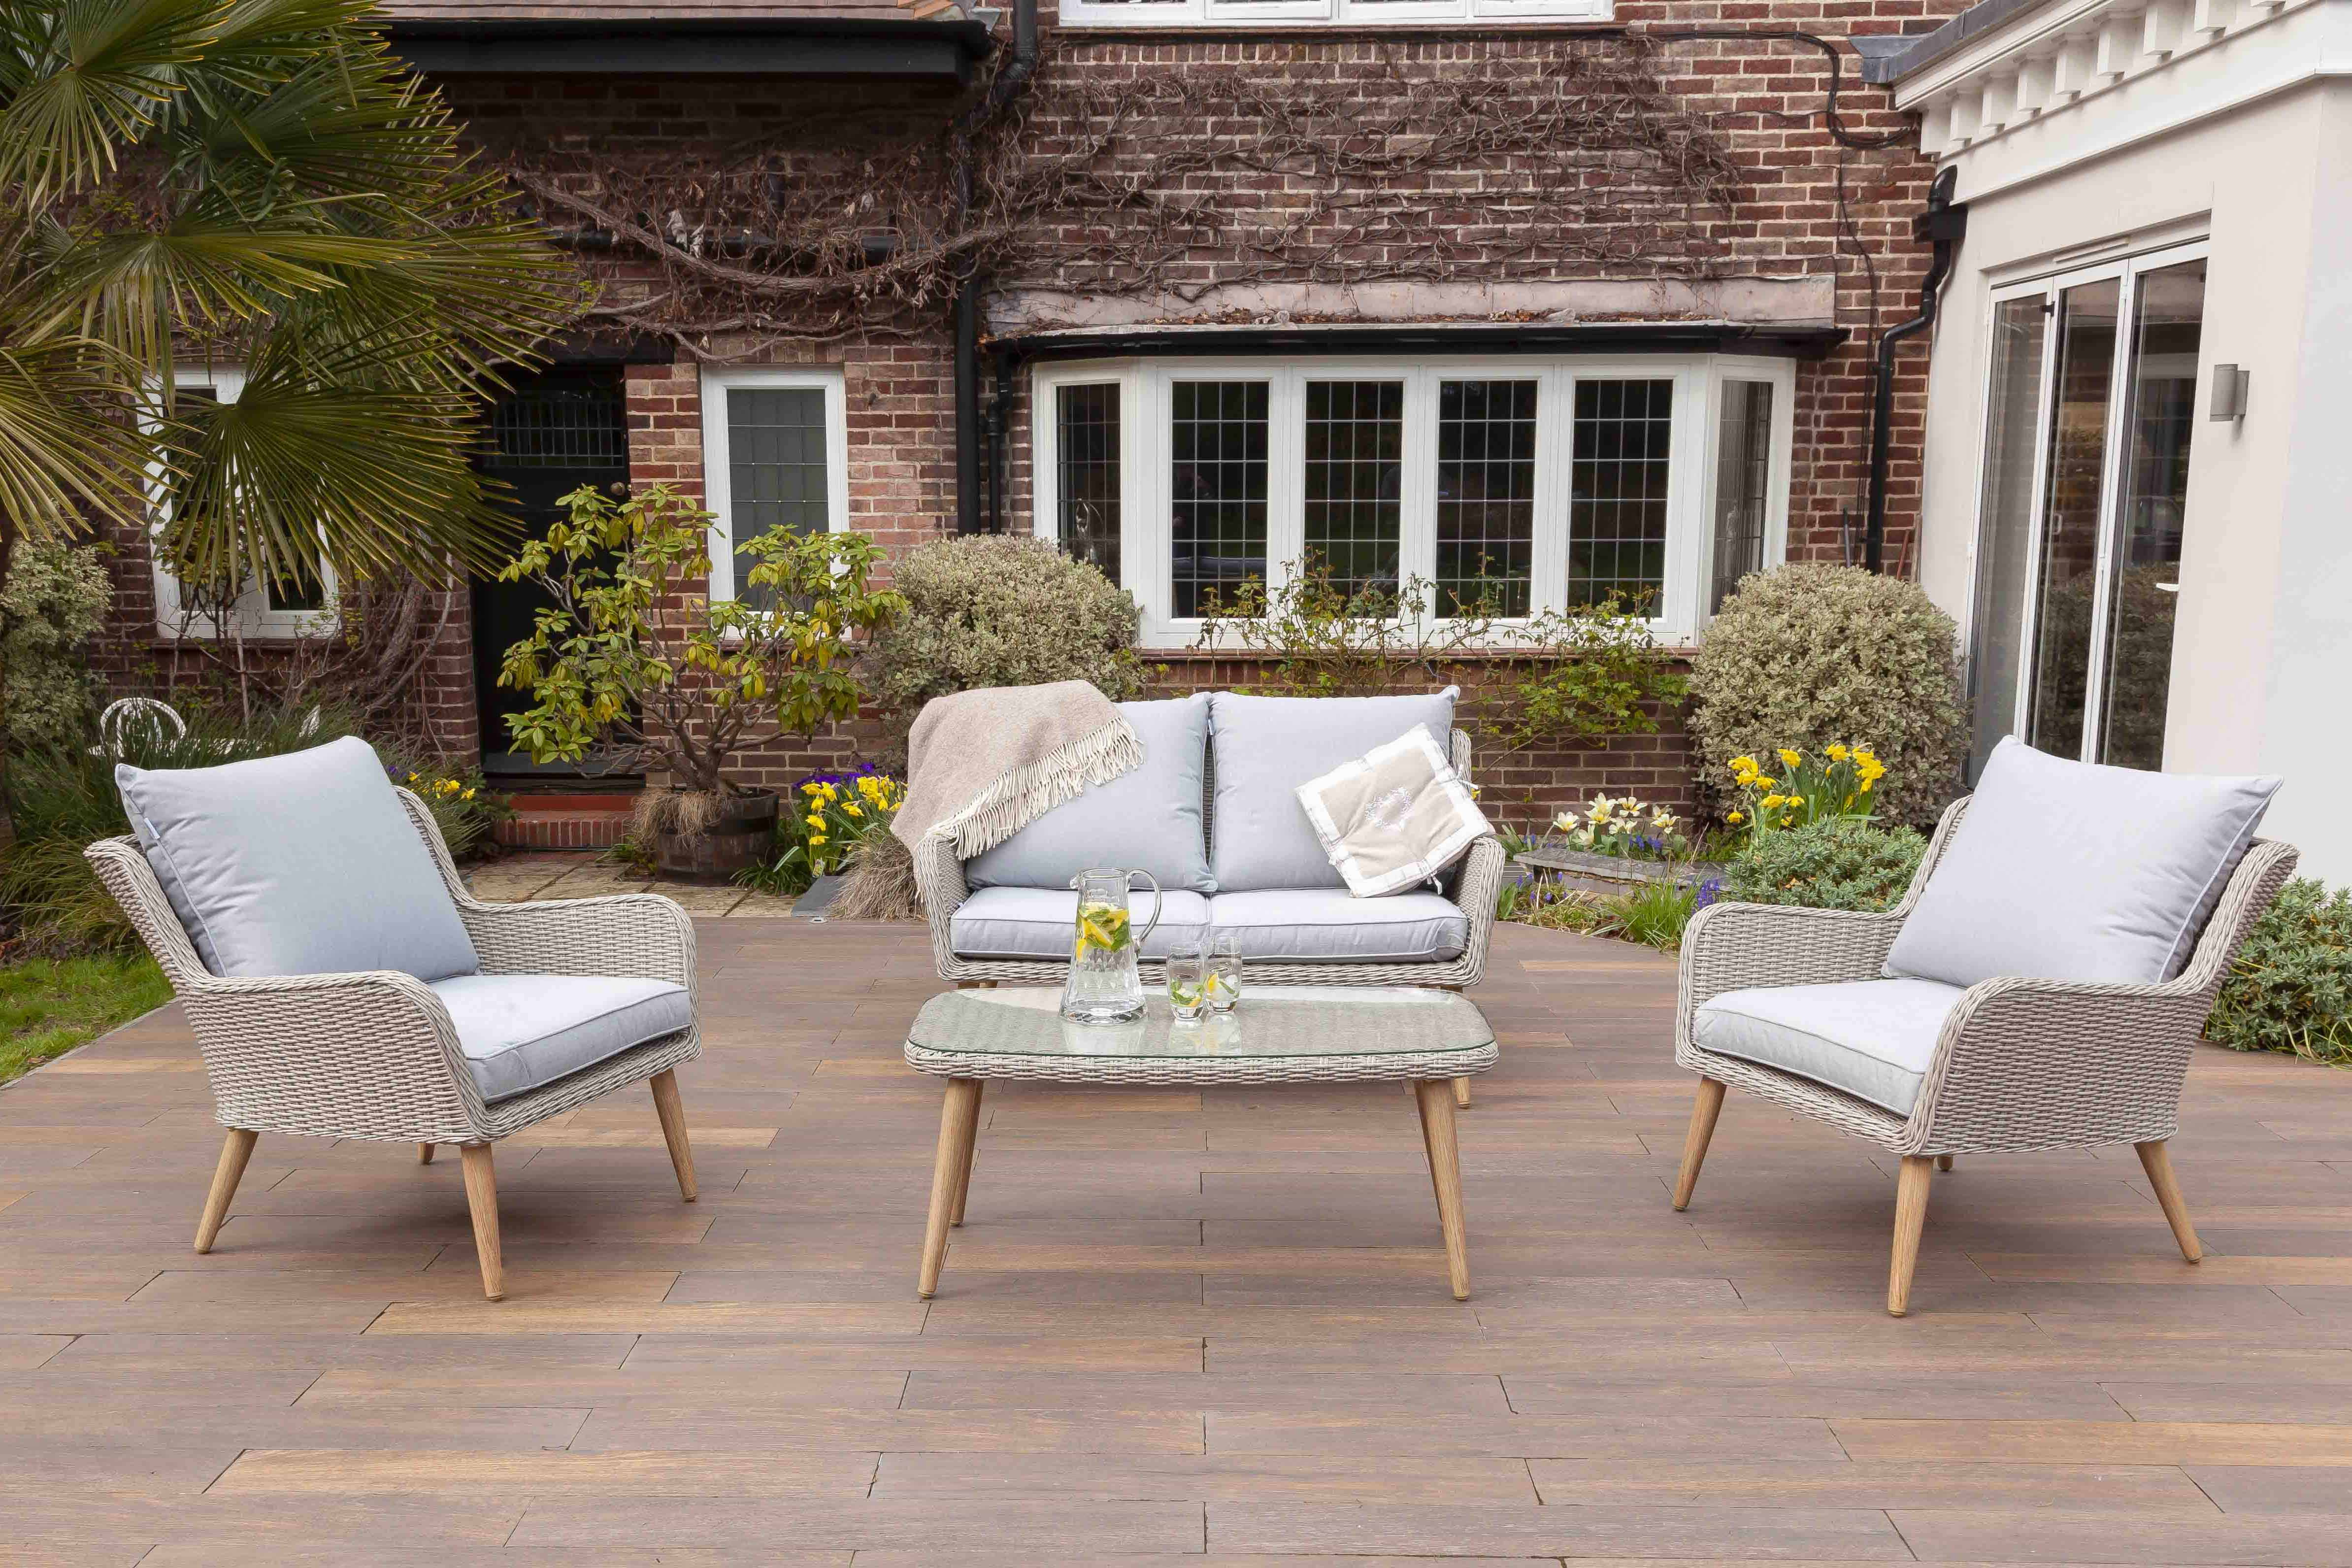 EnviroBuild announces 30% off garden furniture sale